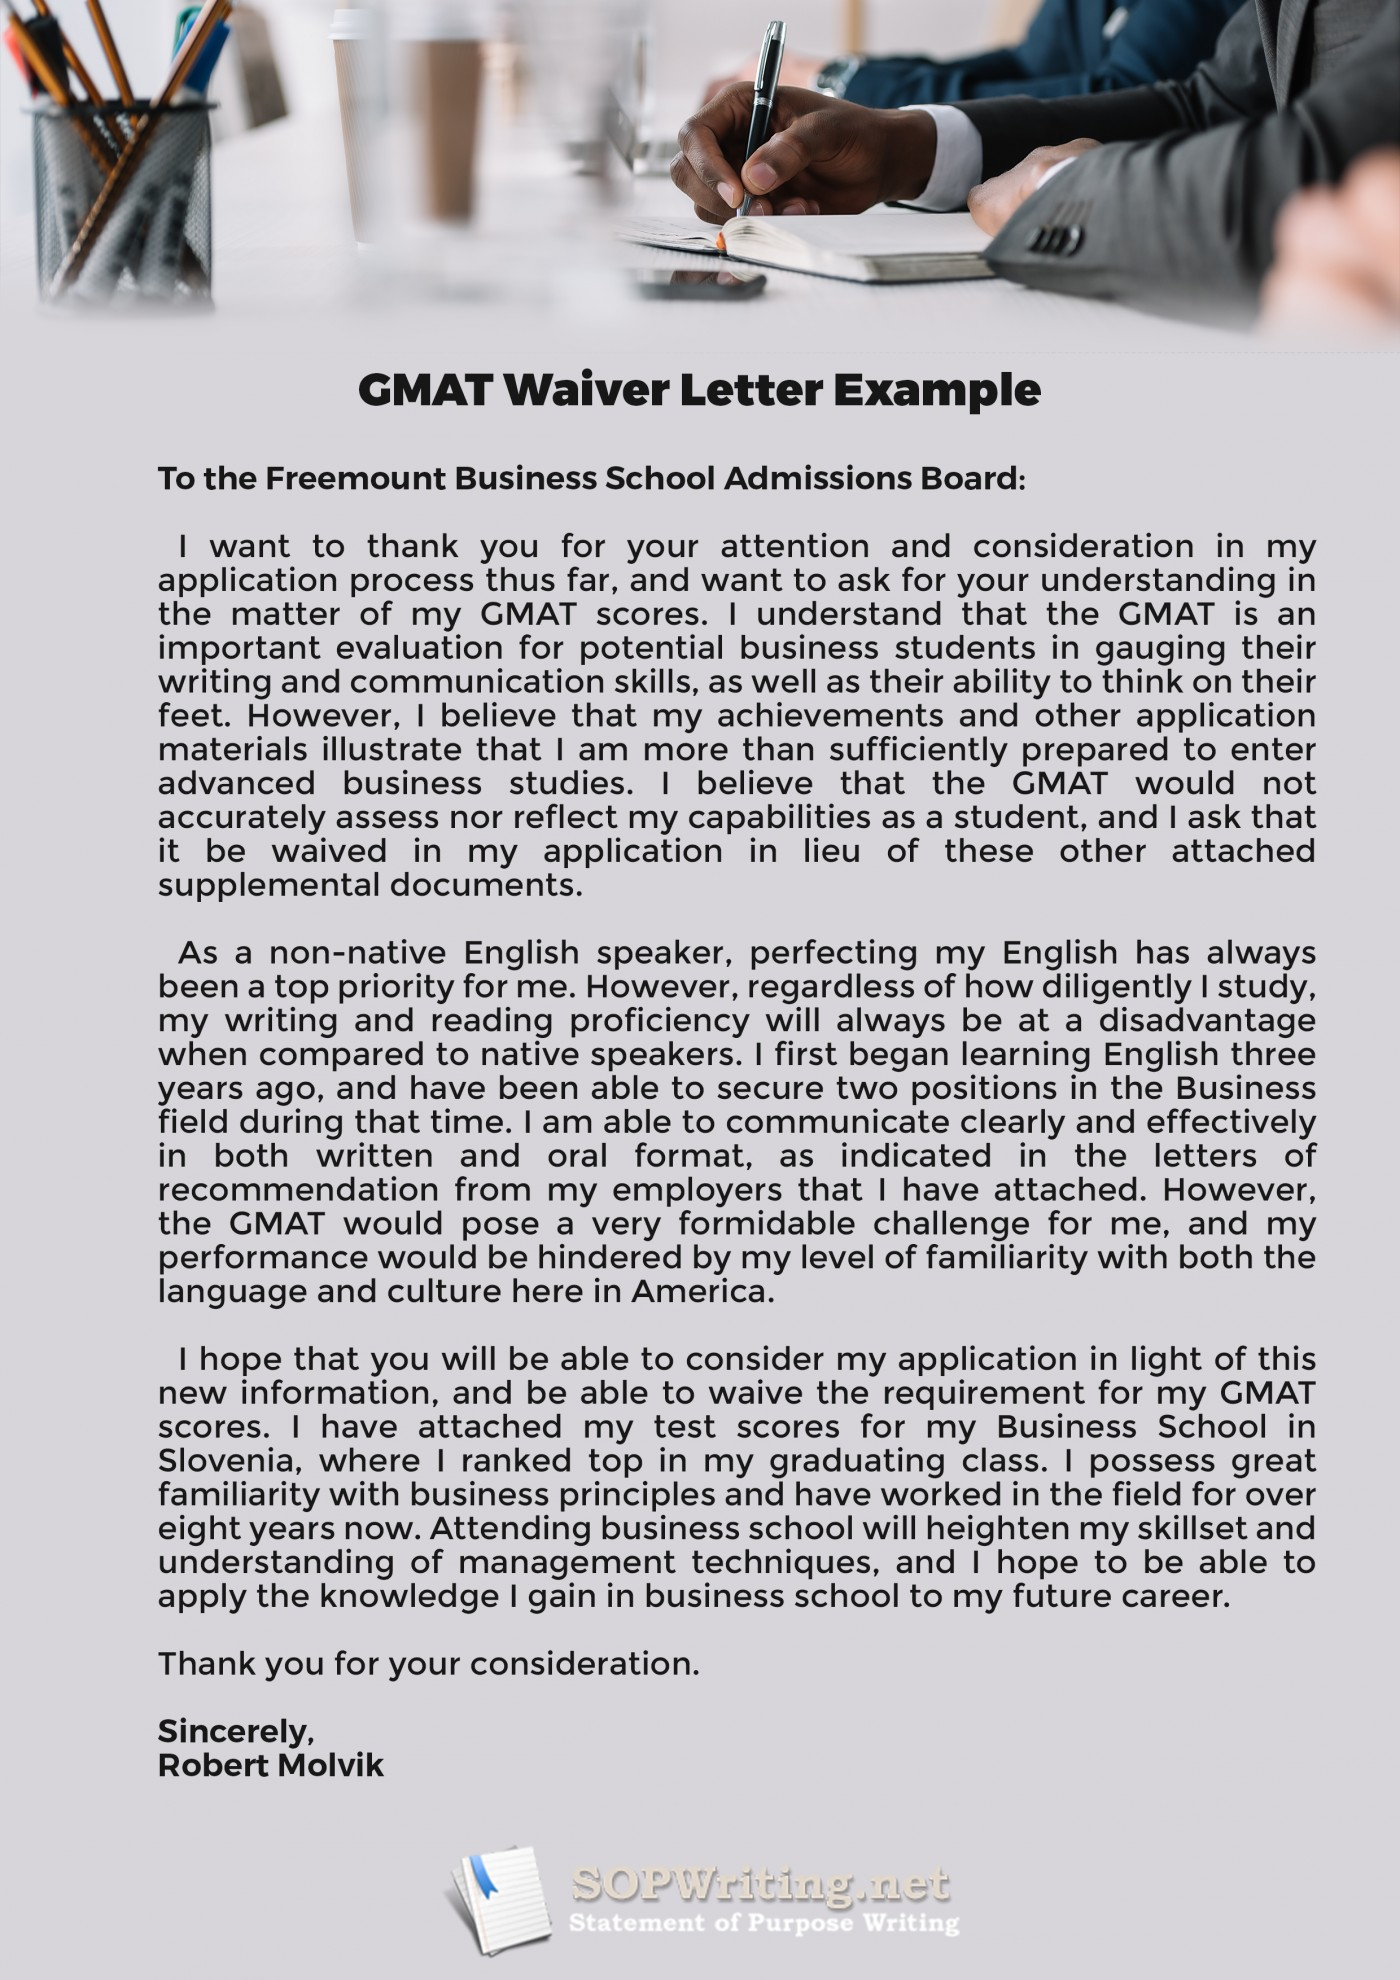 013 Essay Example Gmat Examples Waiver Top Analysis Argument Awa Good 1400